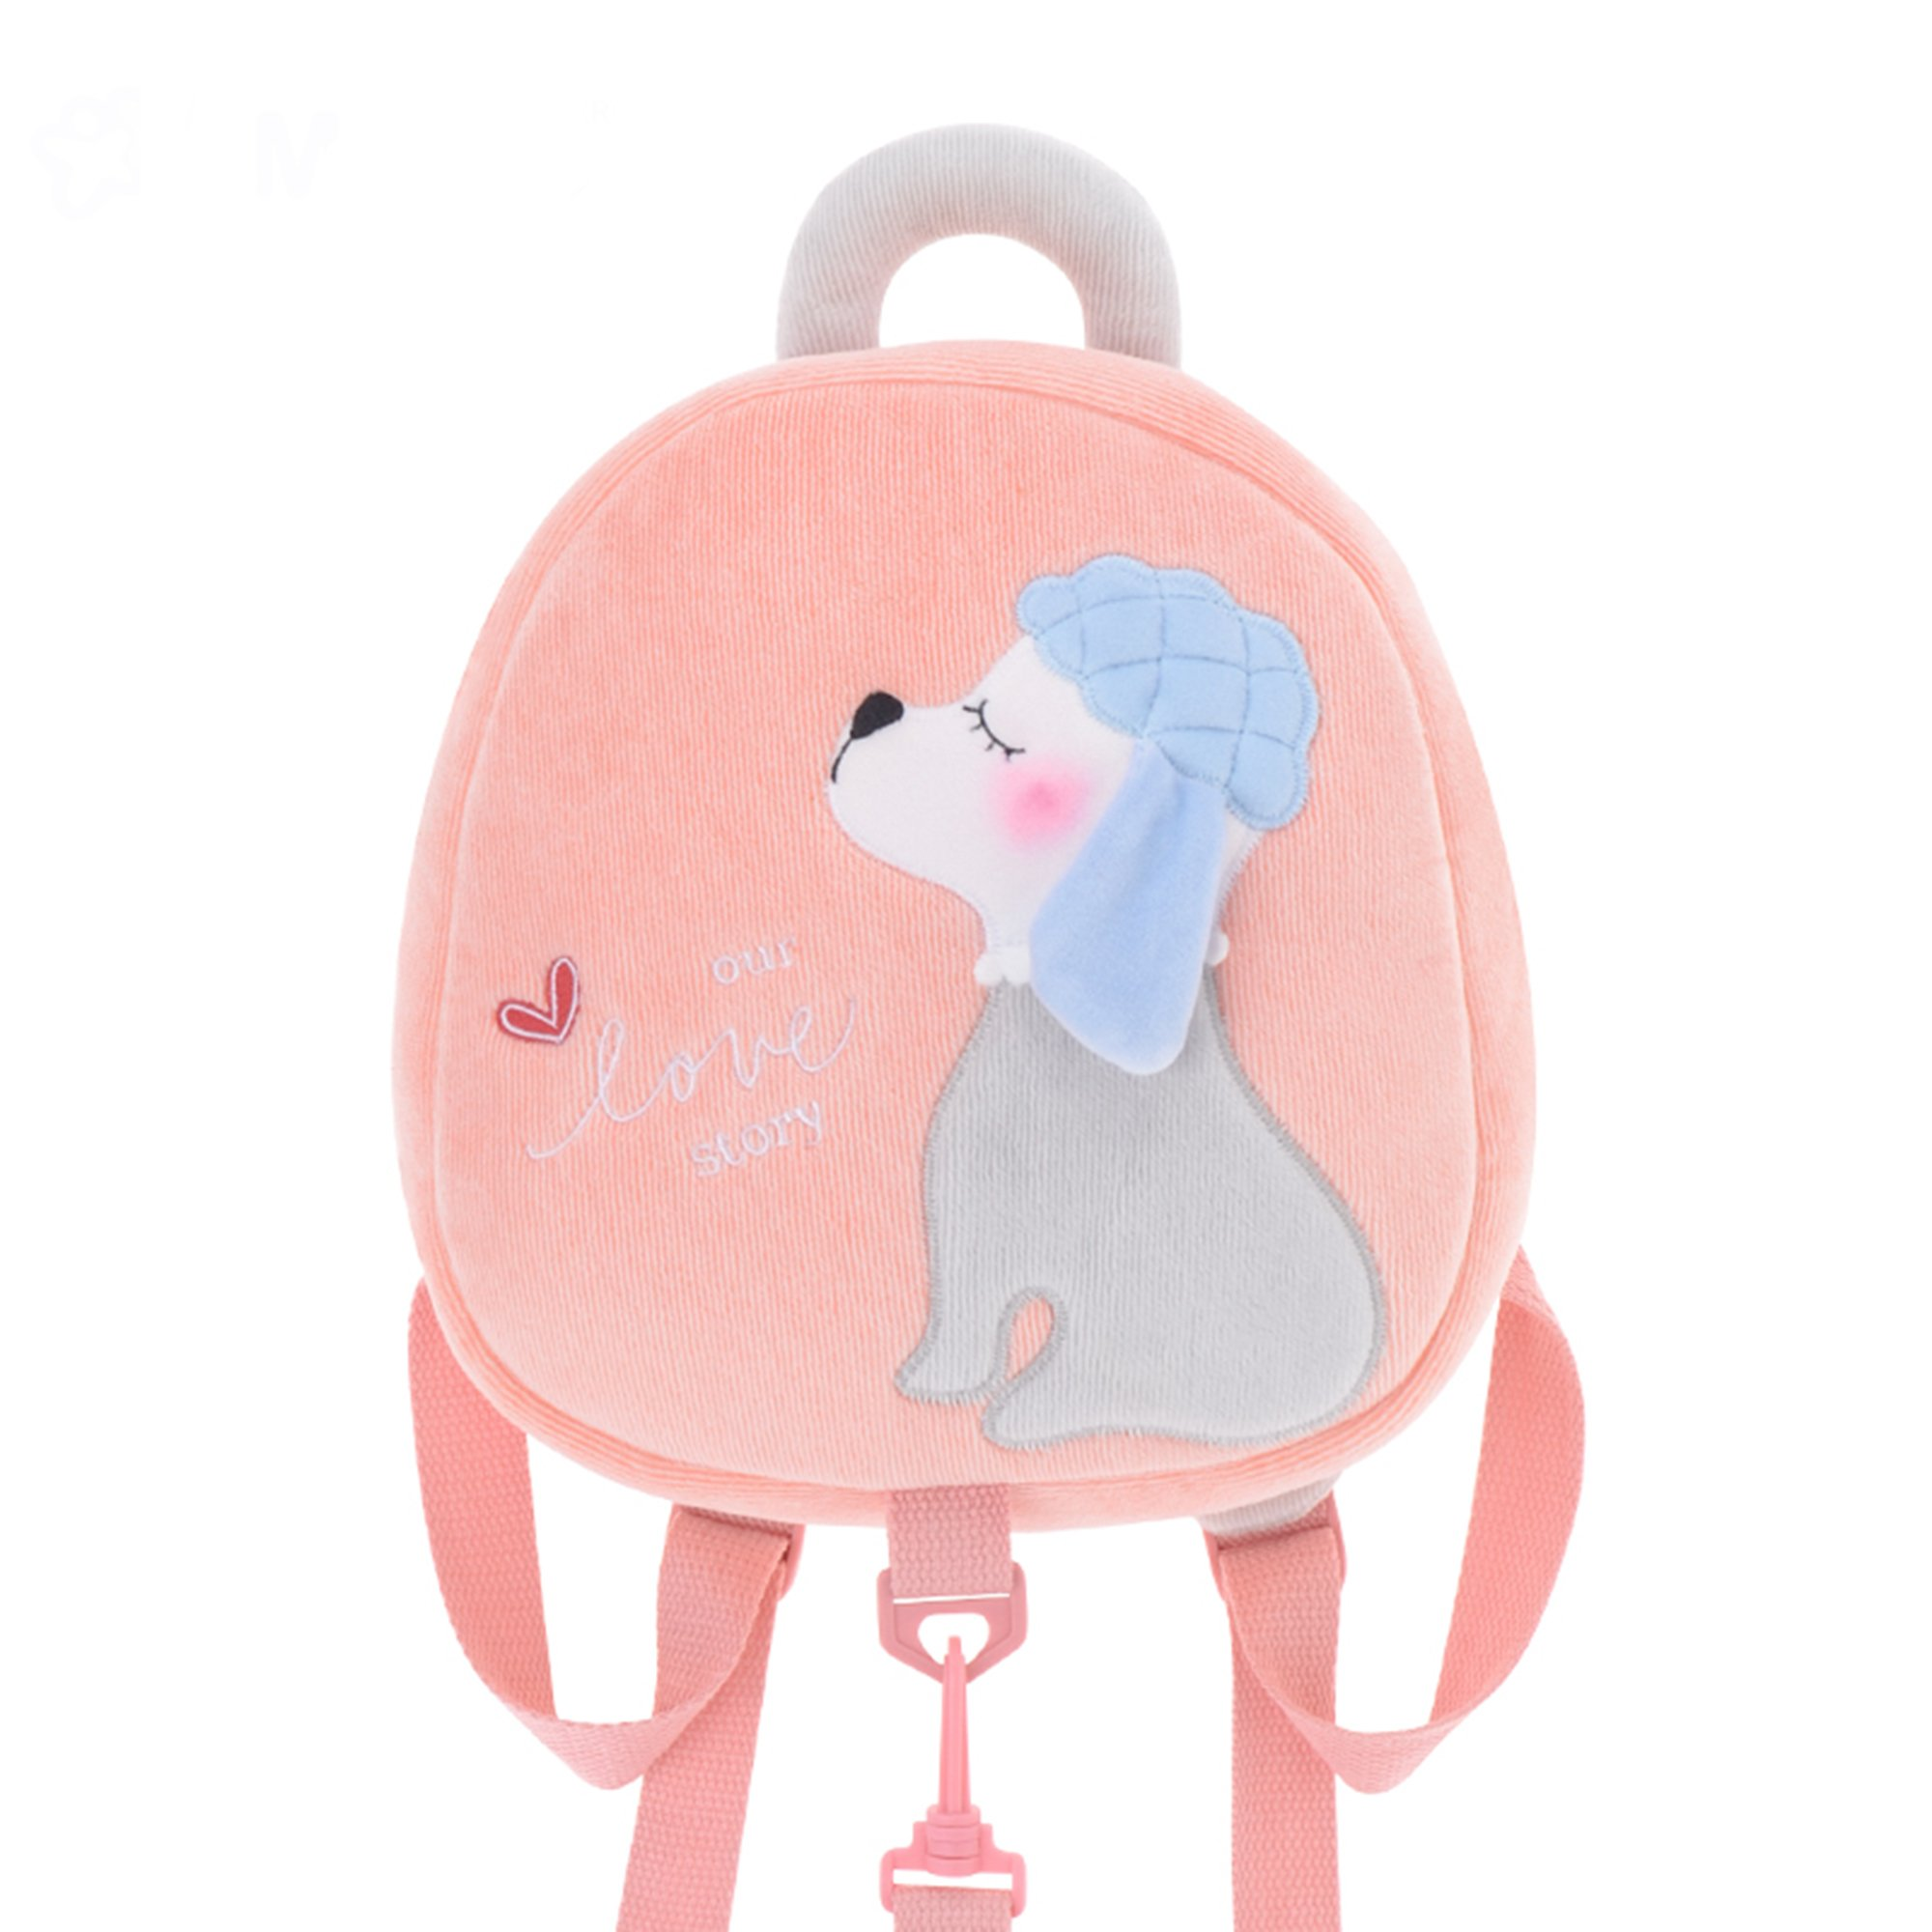 Me Too Kids Leash Bags Toddler Plush Backpack with Safety Harness Playful Preschool Kids Diaper Bag for Little Children(12-36M) Pink Poodle Dog 10.5''